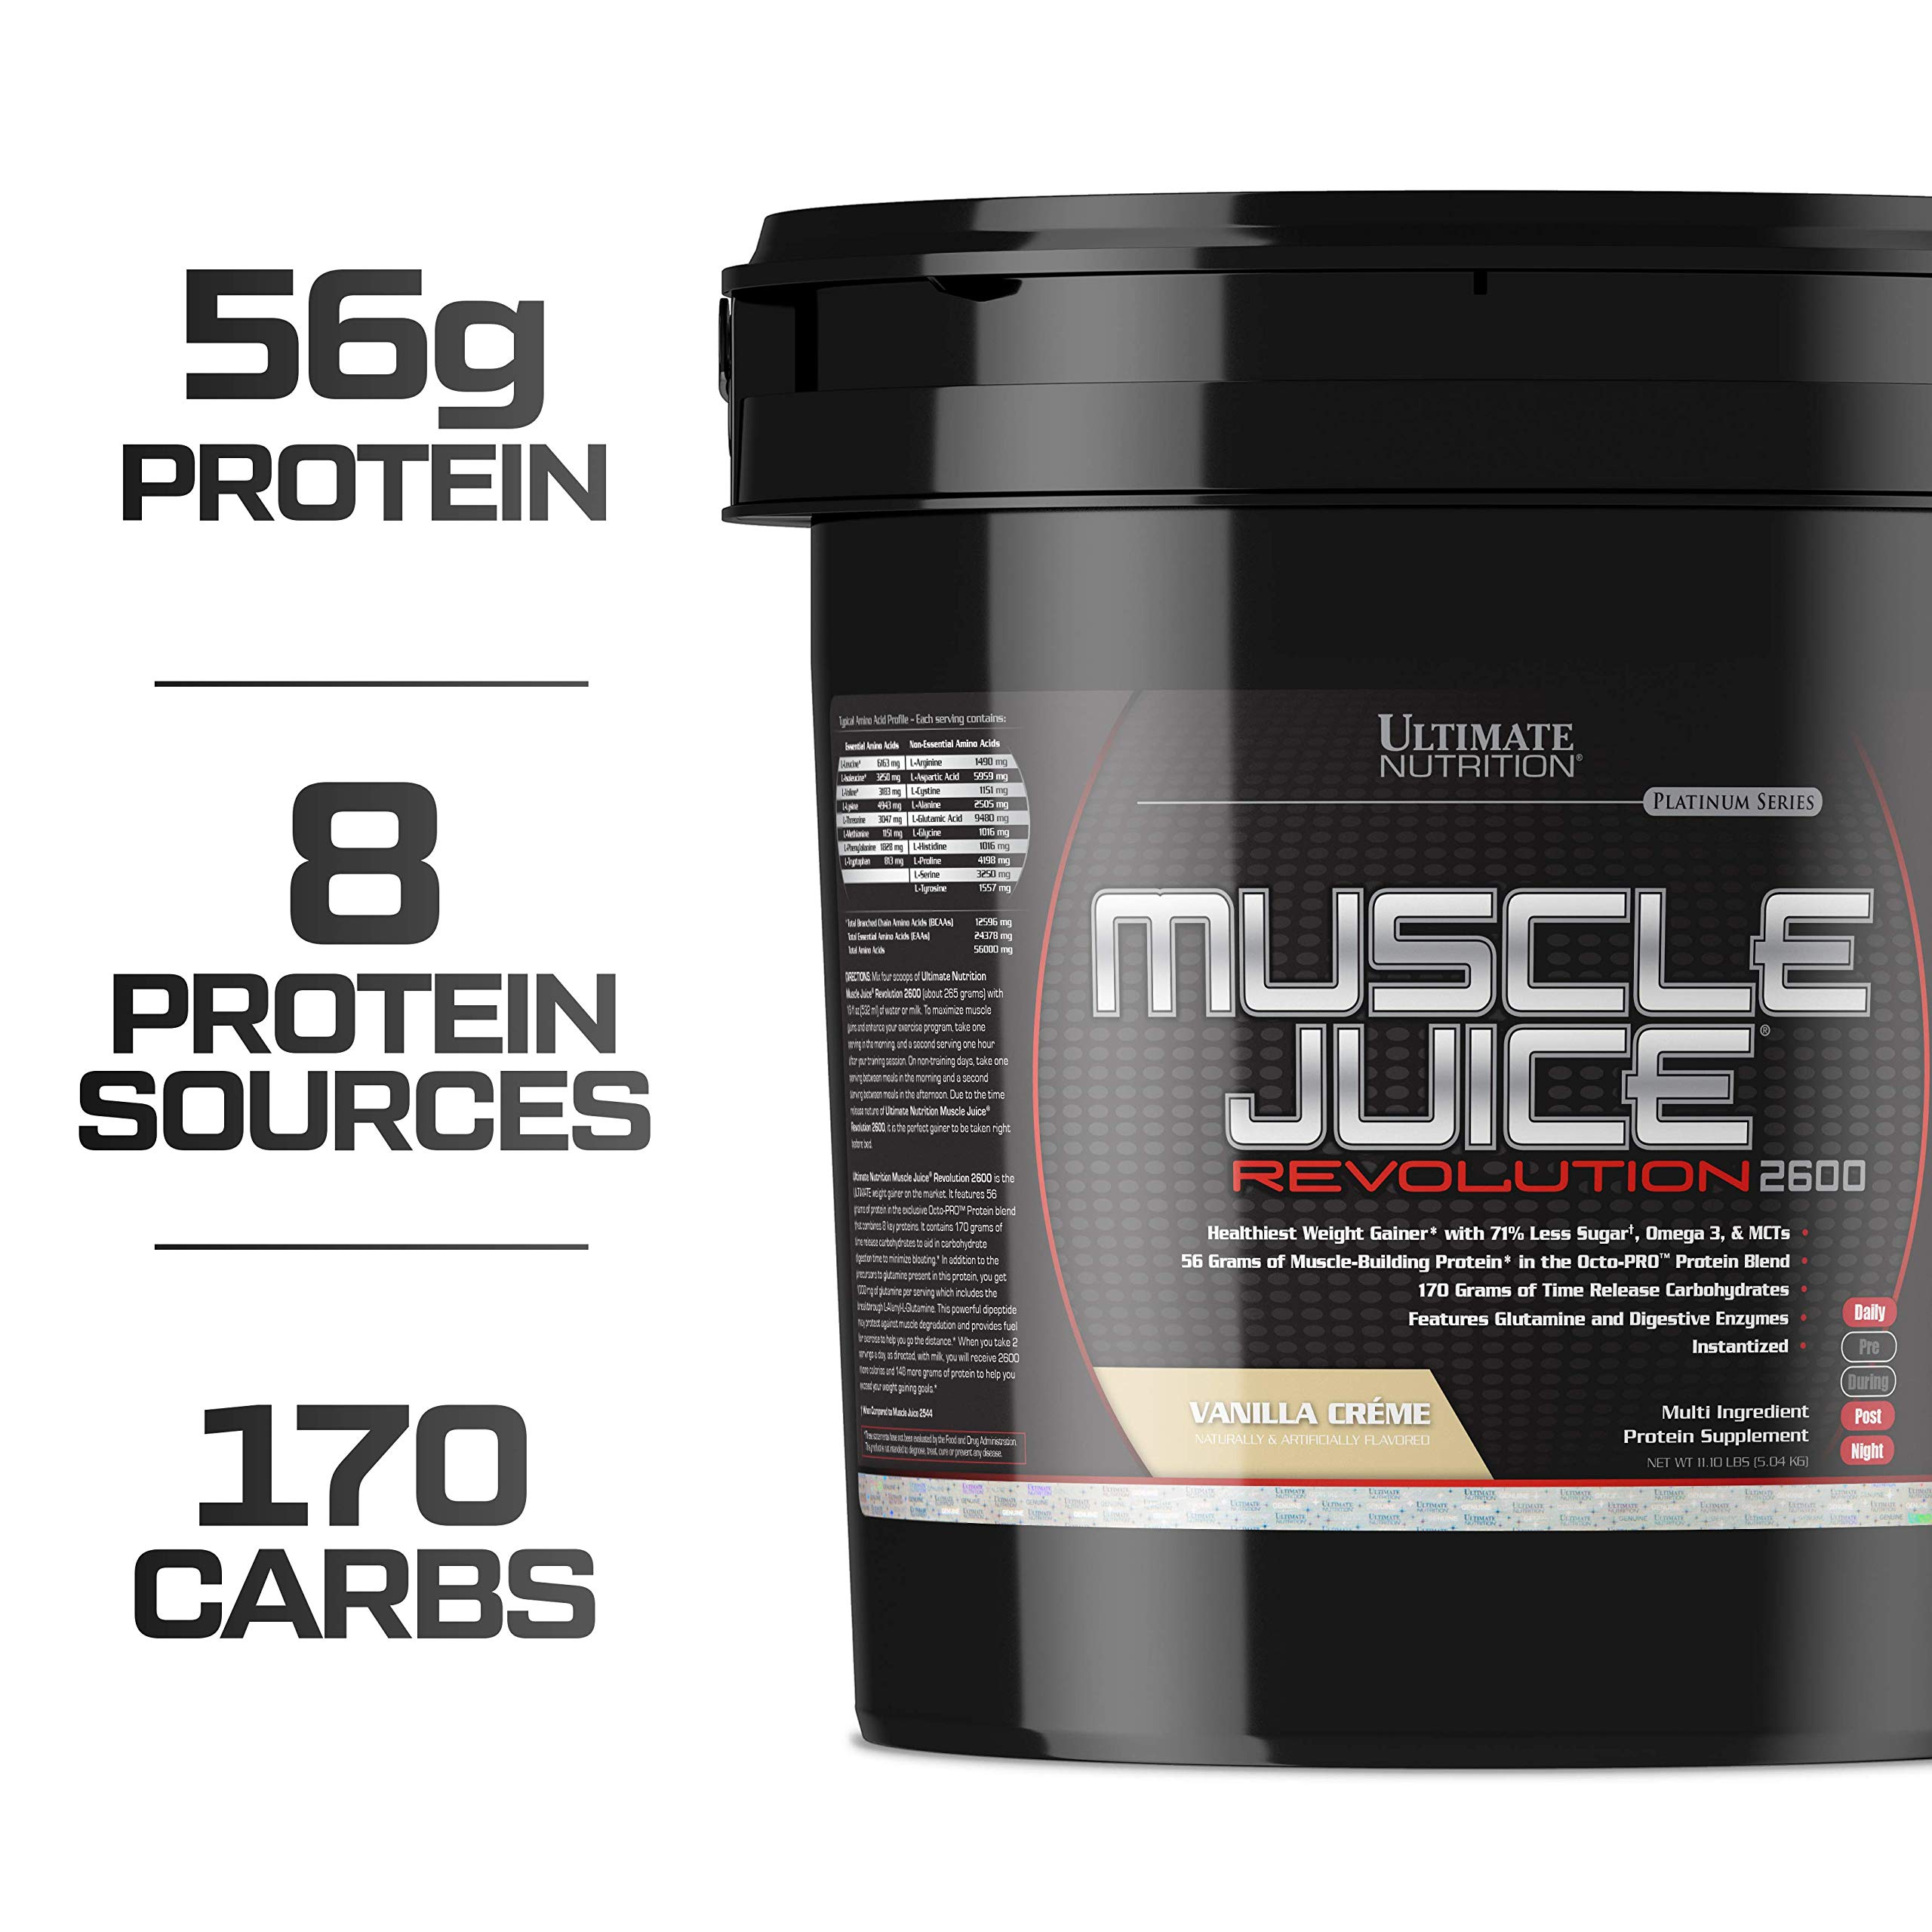 Ultimate Nutrition Muscle Juice Revolution Weight and Muscle Gainer Protein Powder with Egg Protein, Micellar Casein, and Maltodextrin, Vanilla, 11.1 Pounds